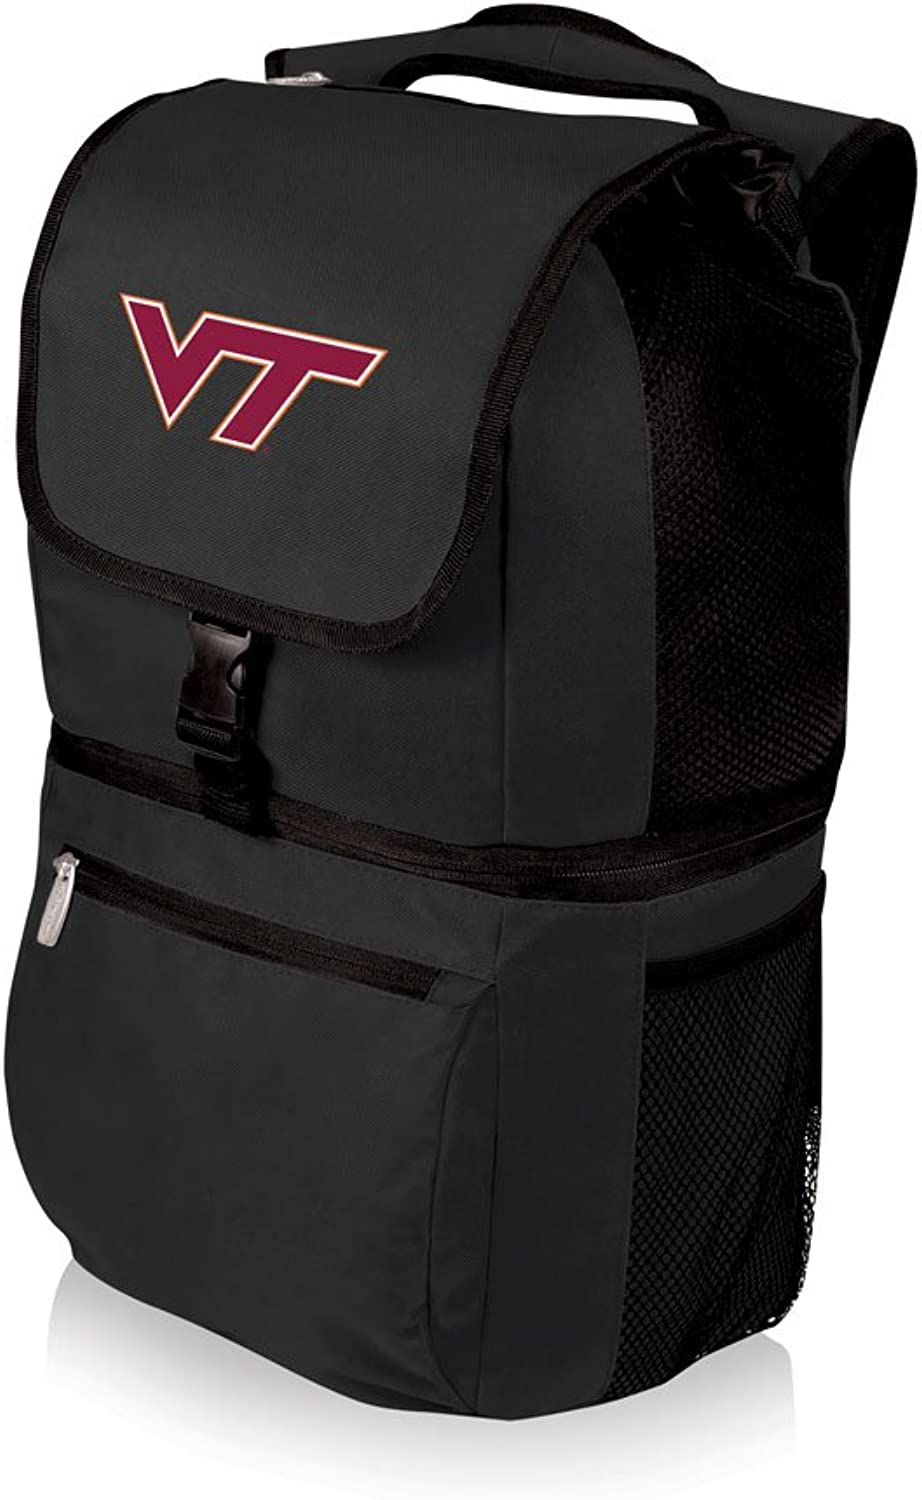 NCAA Virginia Tech Hokies Zuma Insulated Cooler Backpack, Black